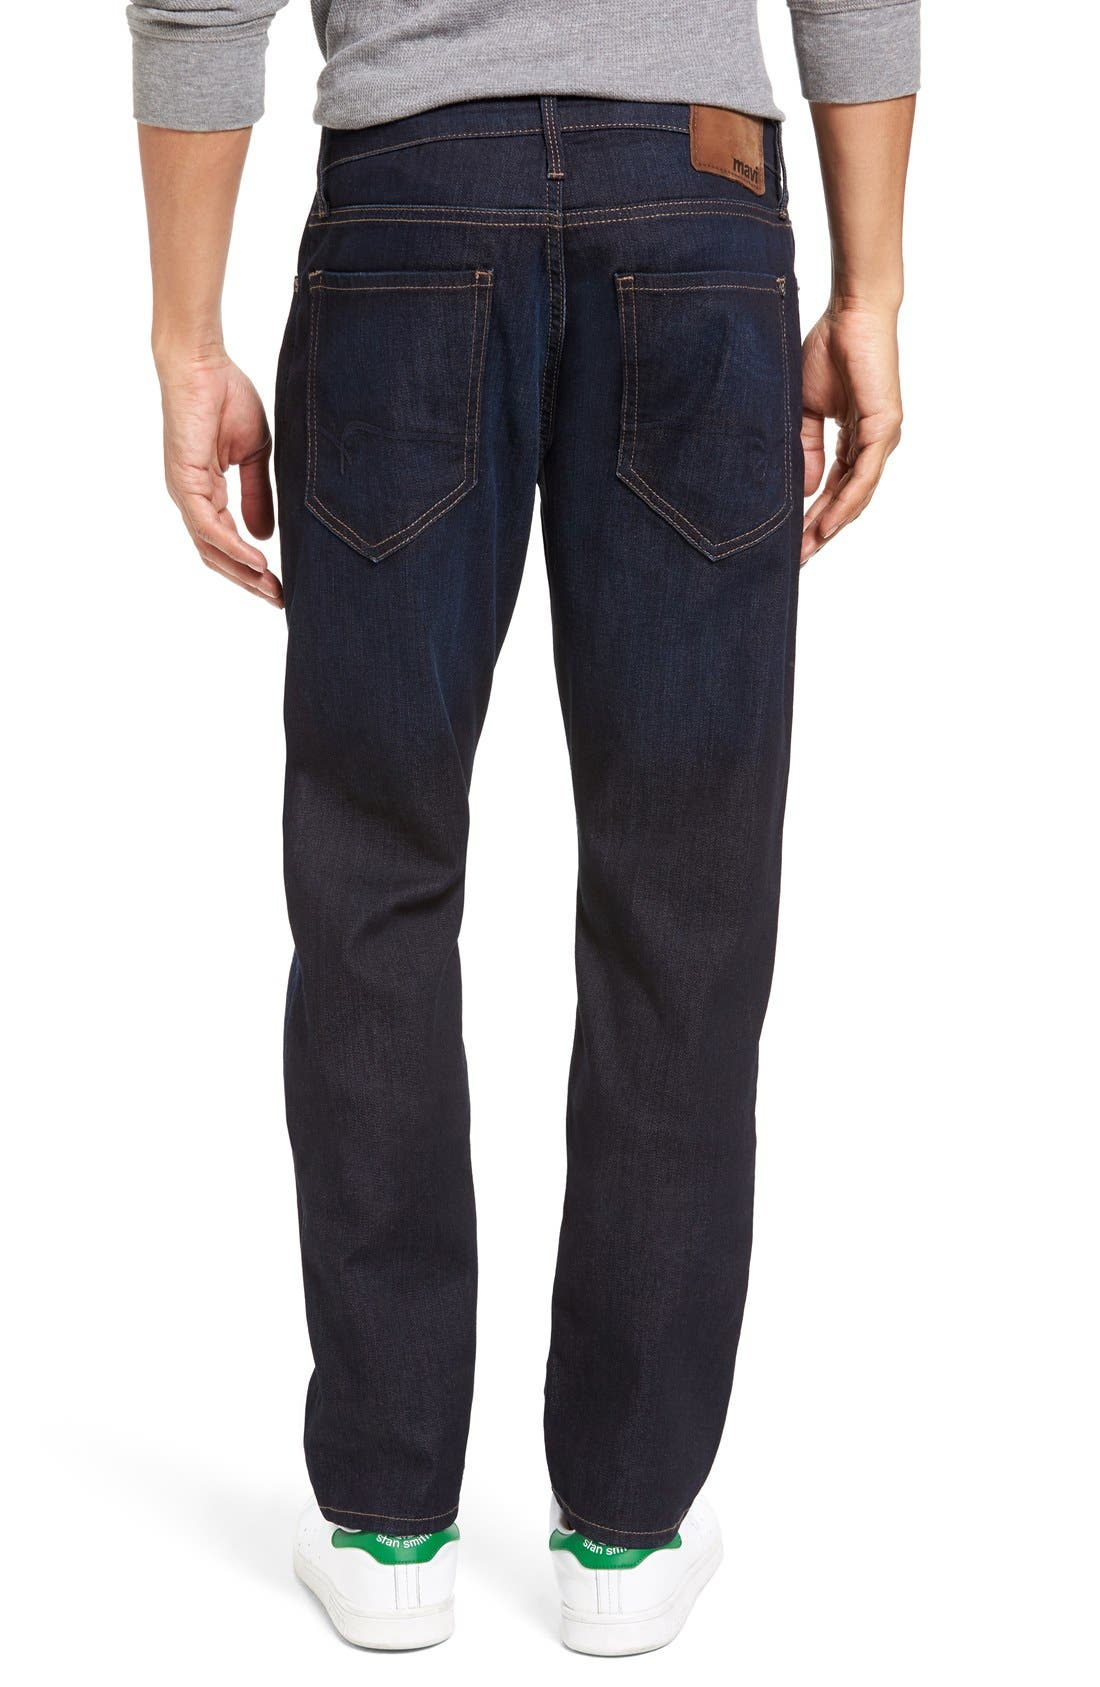 Marcus Slim Straight Leg Jeans,                             Alternate thumbnail 6, color,                             RINSE BRUSHED WILLIAMSBURG